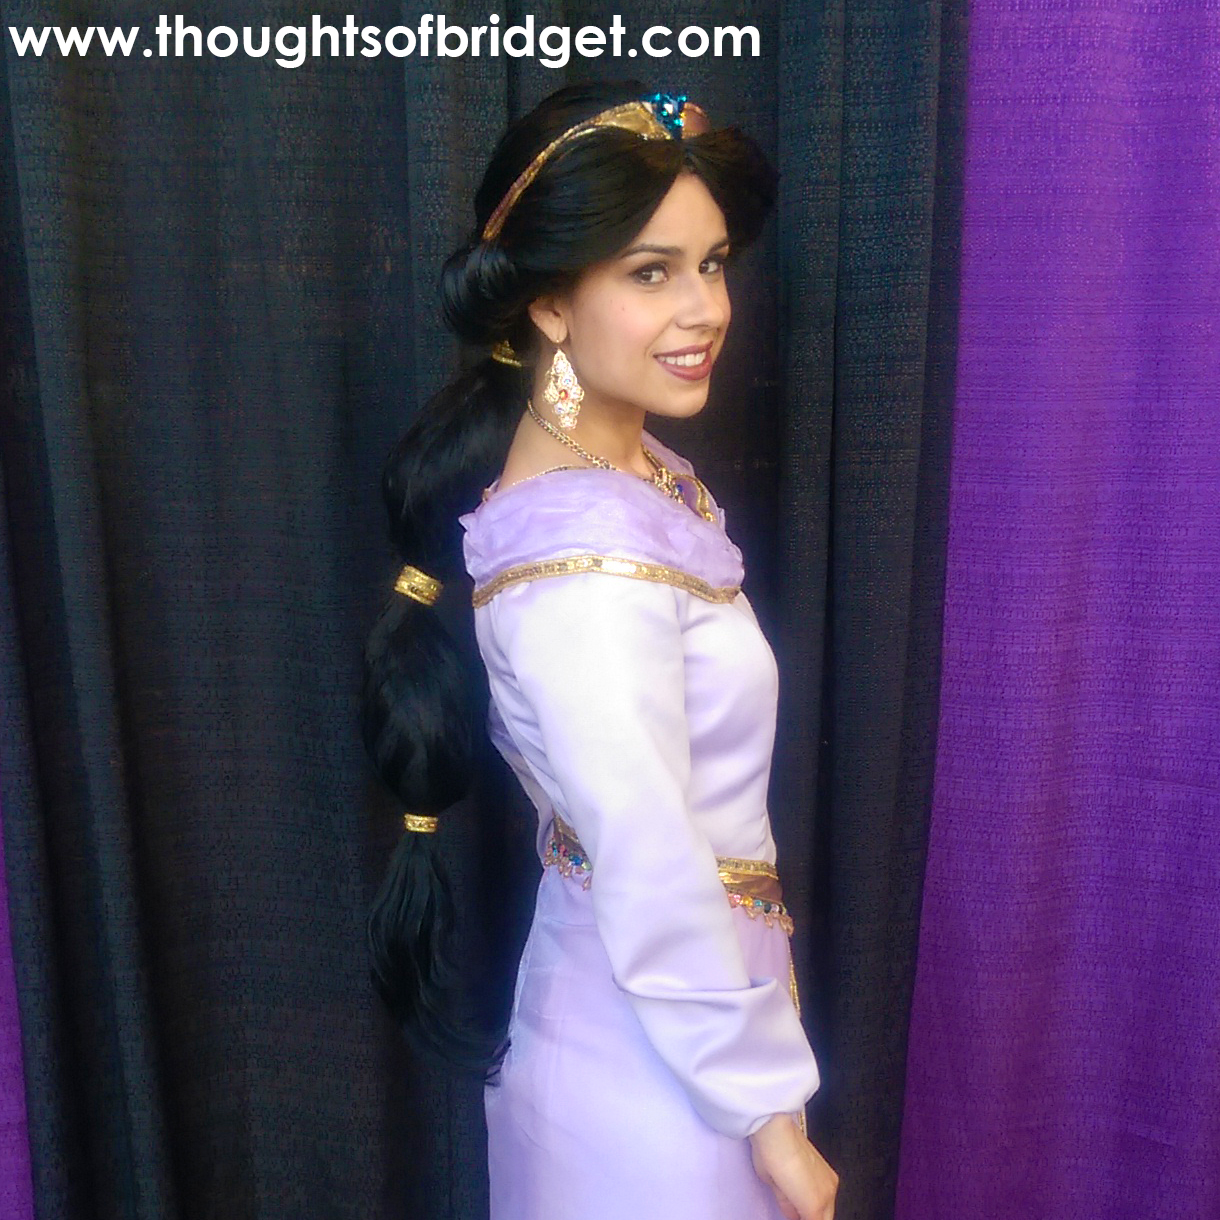 I made this Jasmine costume for the 2015 FanX convention in Salt Lake City. Someone on Pinterest asked if I could post a tutorial on how I styled the wig ...  sc 1 st  Thoughts of Bridget & Thoughts of Bridget: Jasmine Wig Tutorial